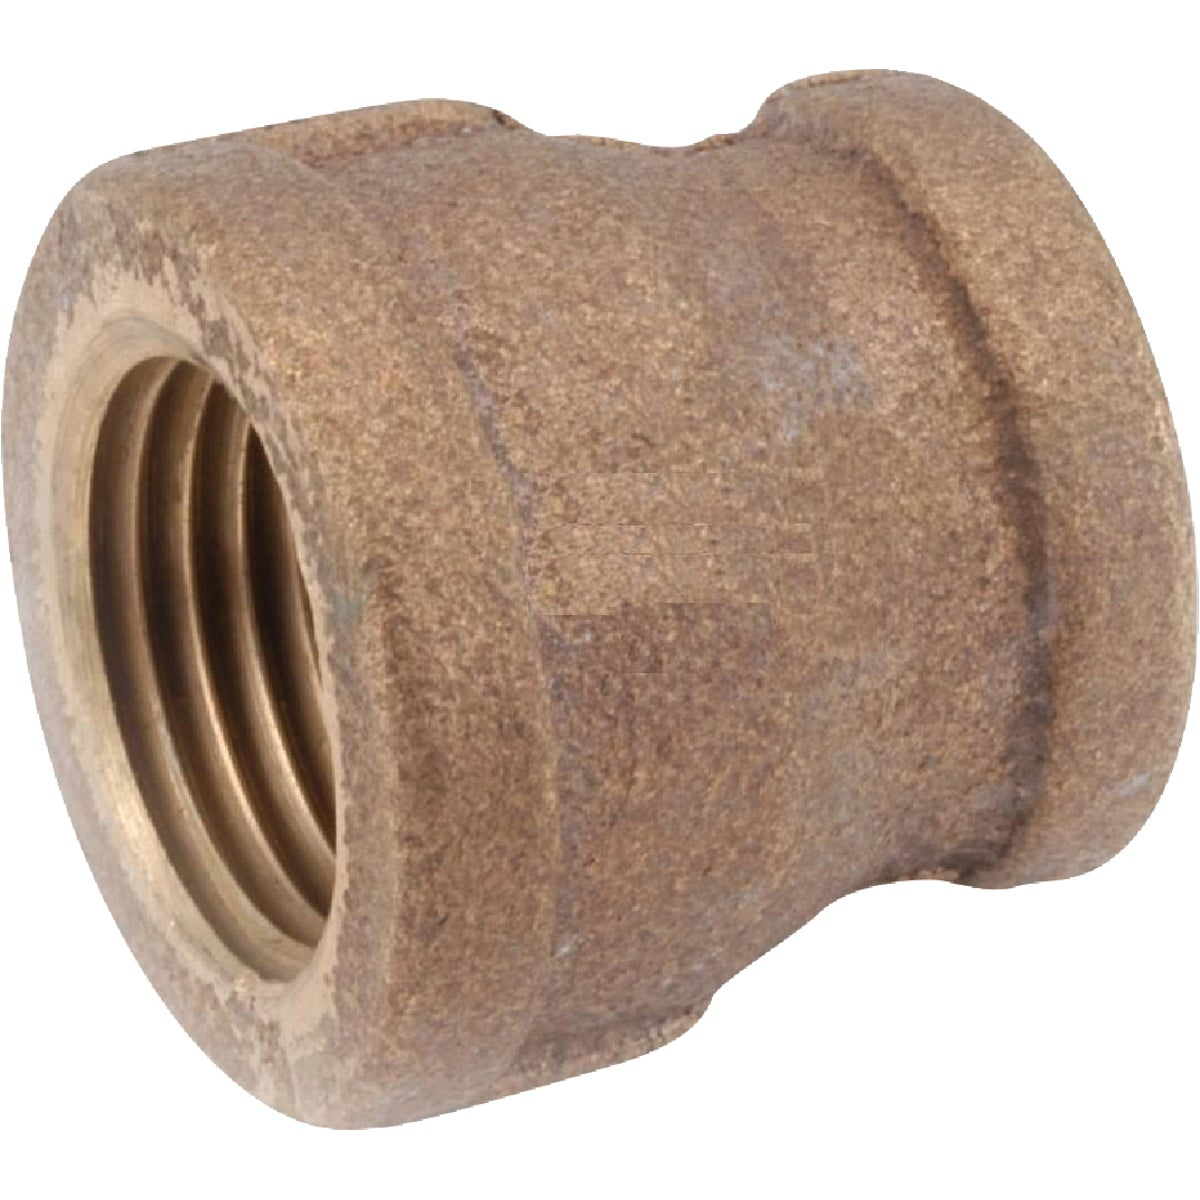 1/2X3/8 BRASS COUPLING - 738119-0806 by Anderson Metals Corp